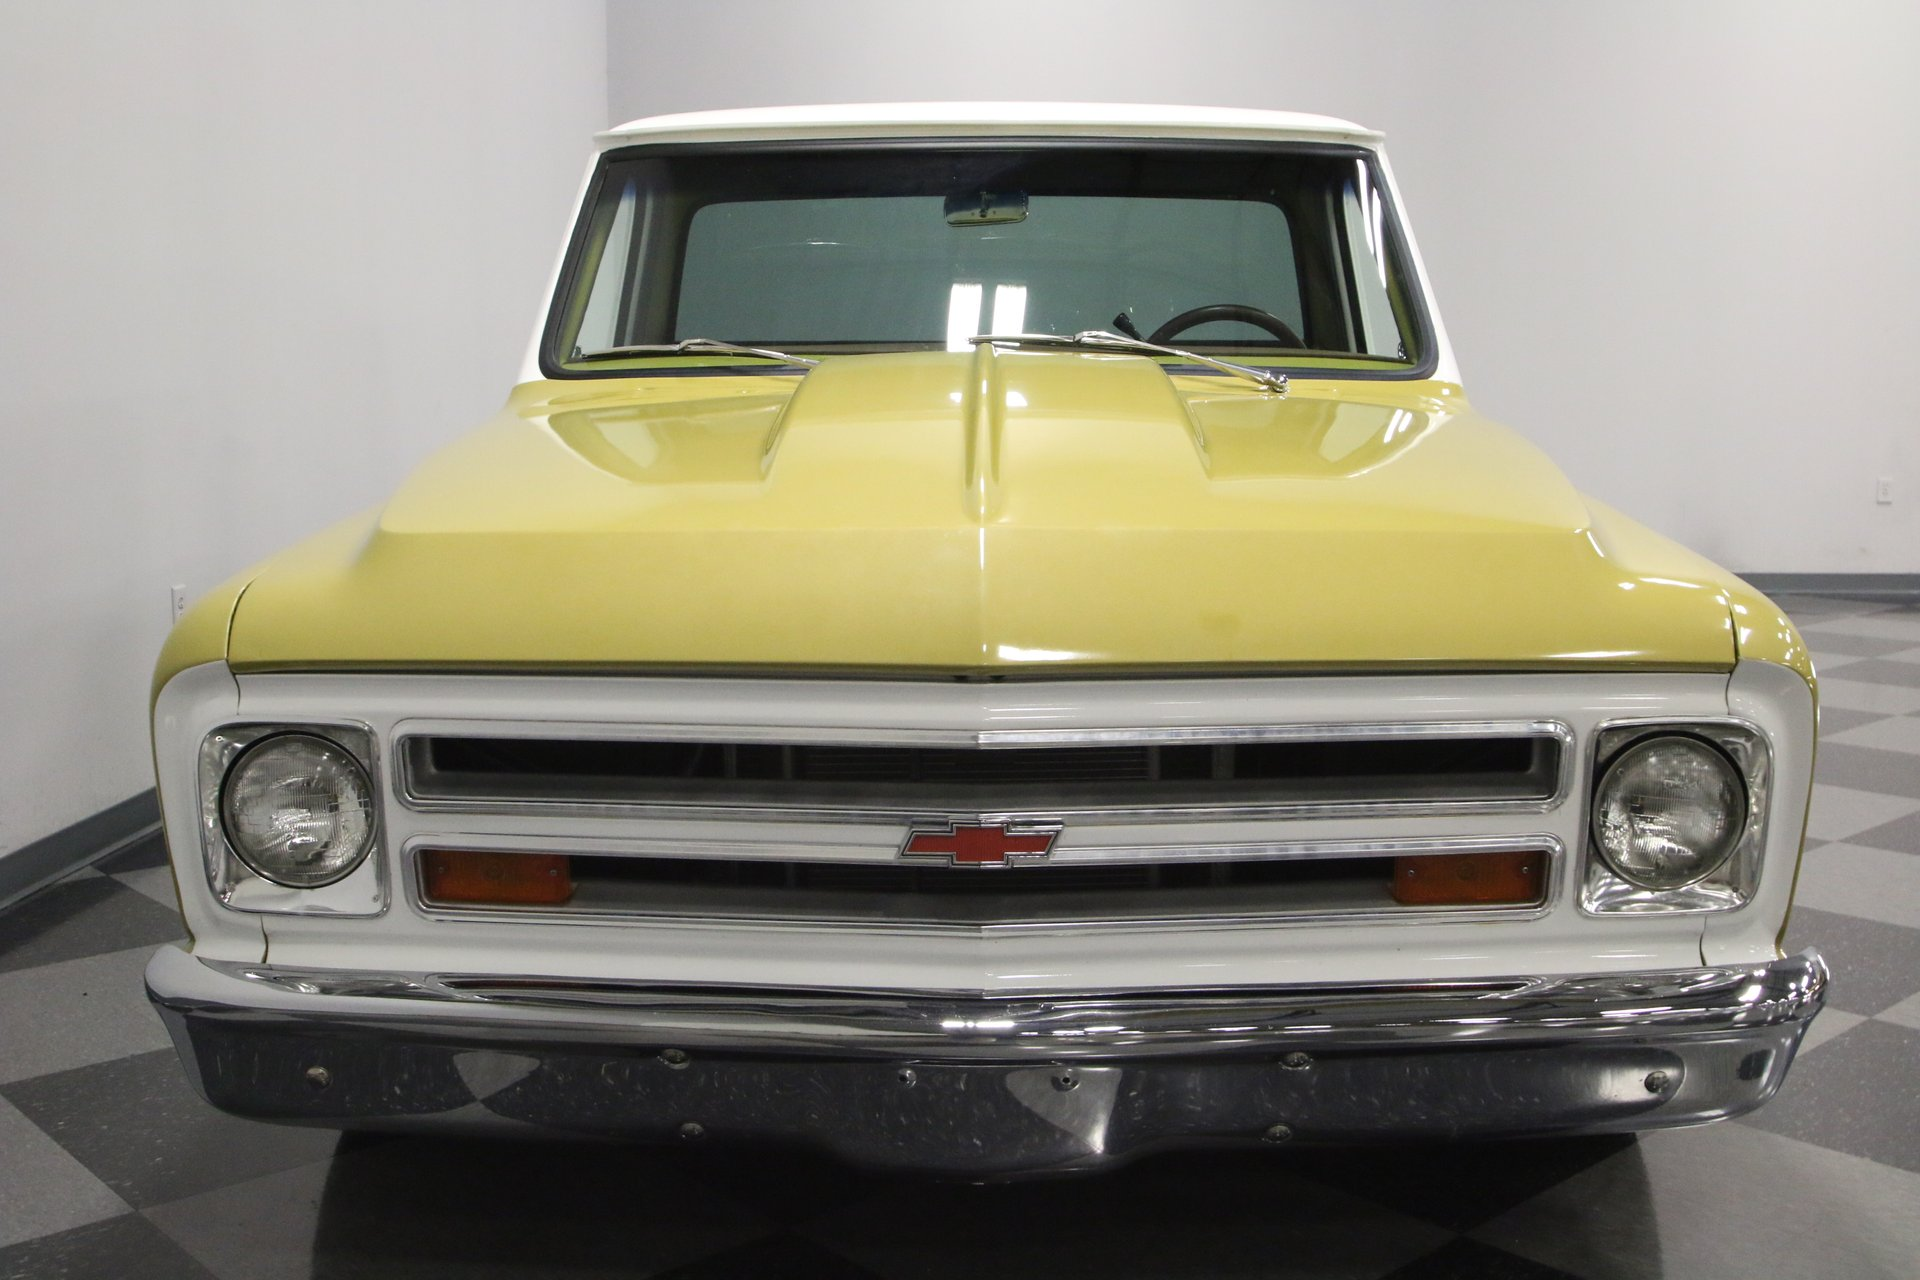 1968 Chevrolet C10 Streetside Classics The Nations Trusted 1955 Chevy Stepside Truck View 360